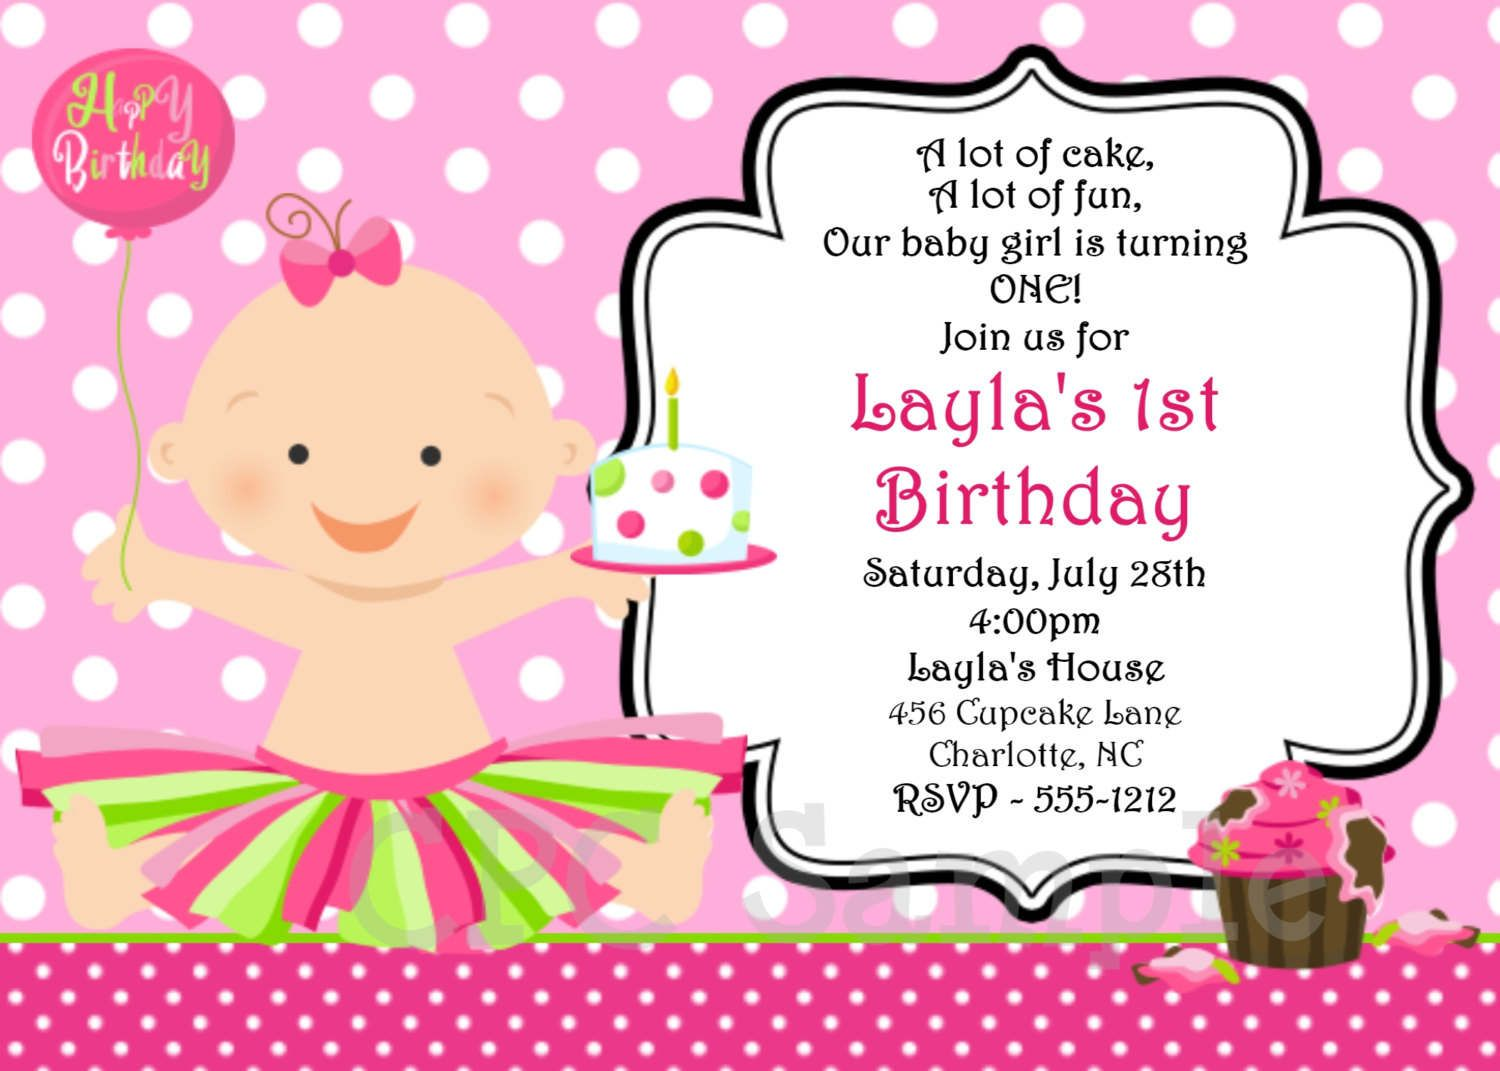 Birthday Invites Free Birthday Invitation Maker Images Downloads – Create Online Birthday Invitations